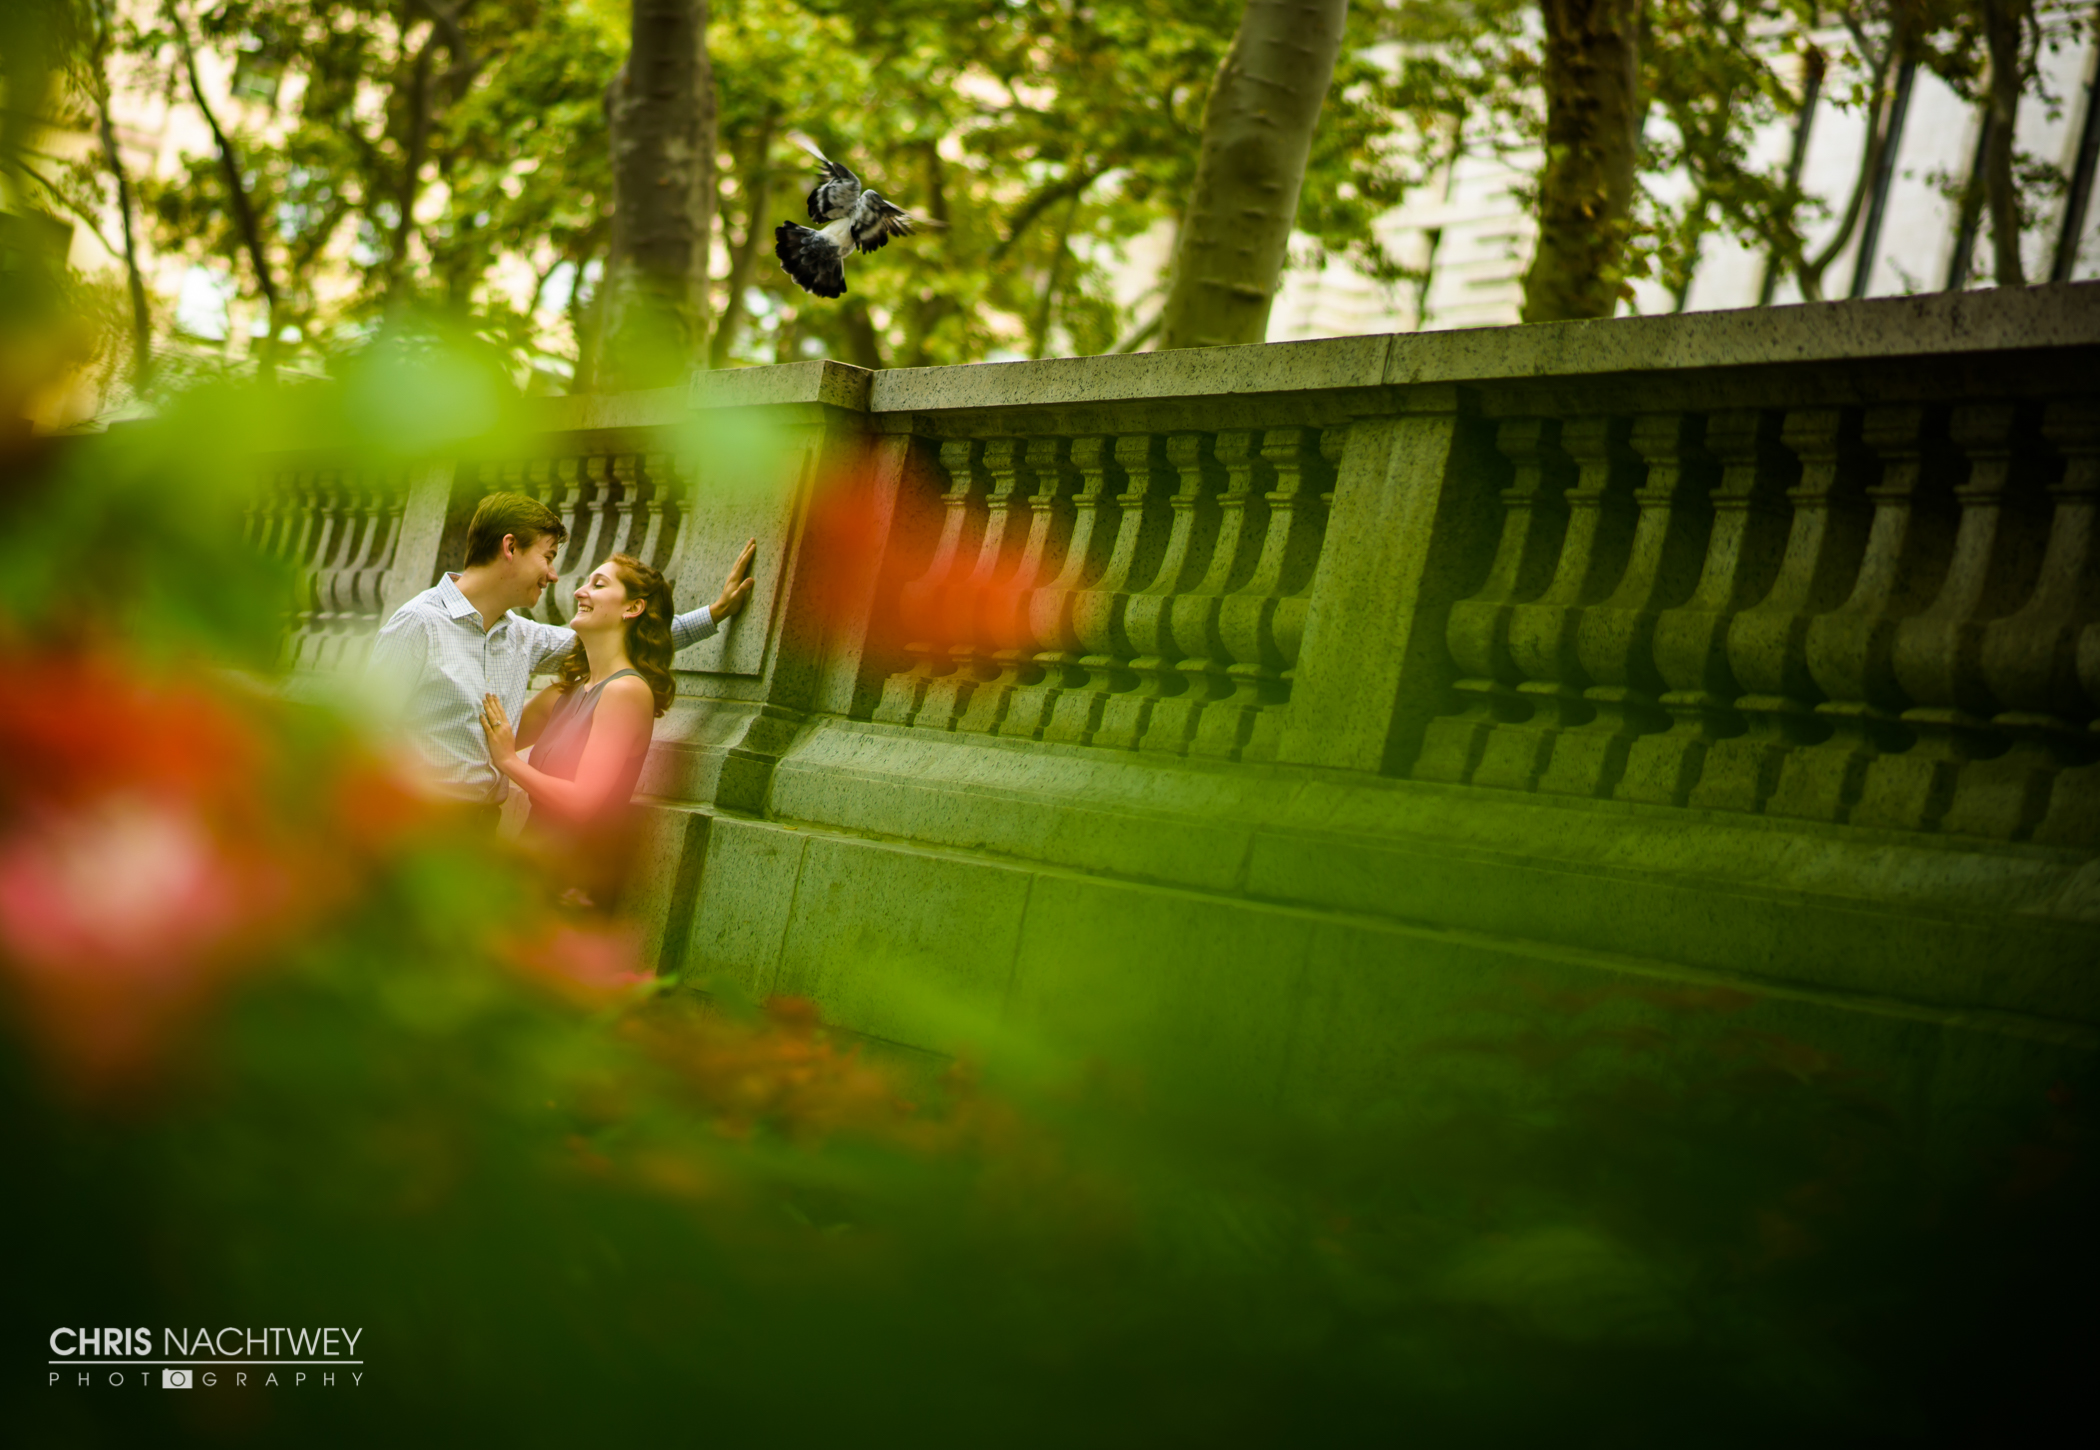 new-york-city-wedding-photographer-chris-nachtwey-2016-4.jpg